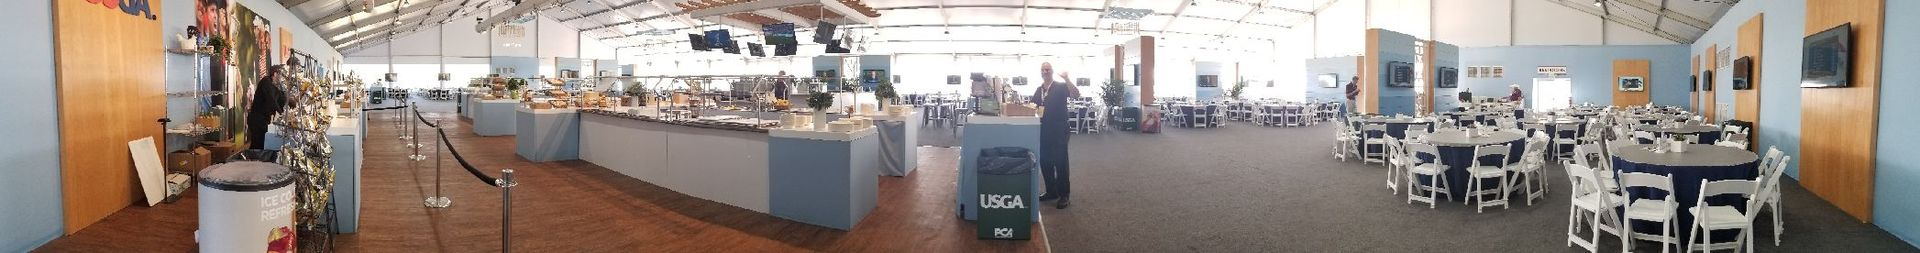 The tent Marino worked in at the 2018 U.S. Open.